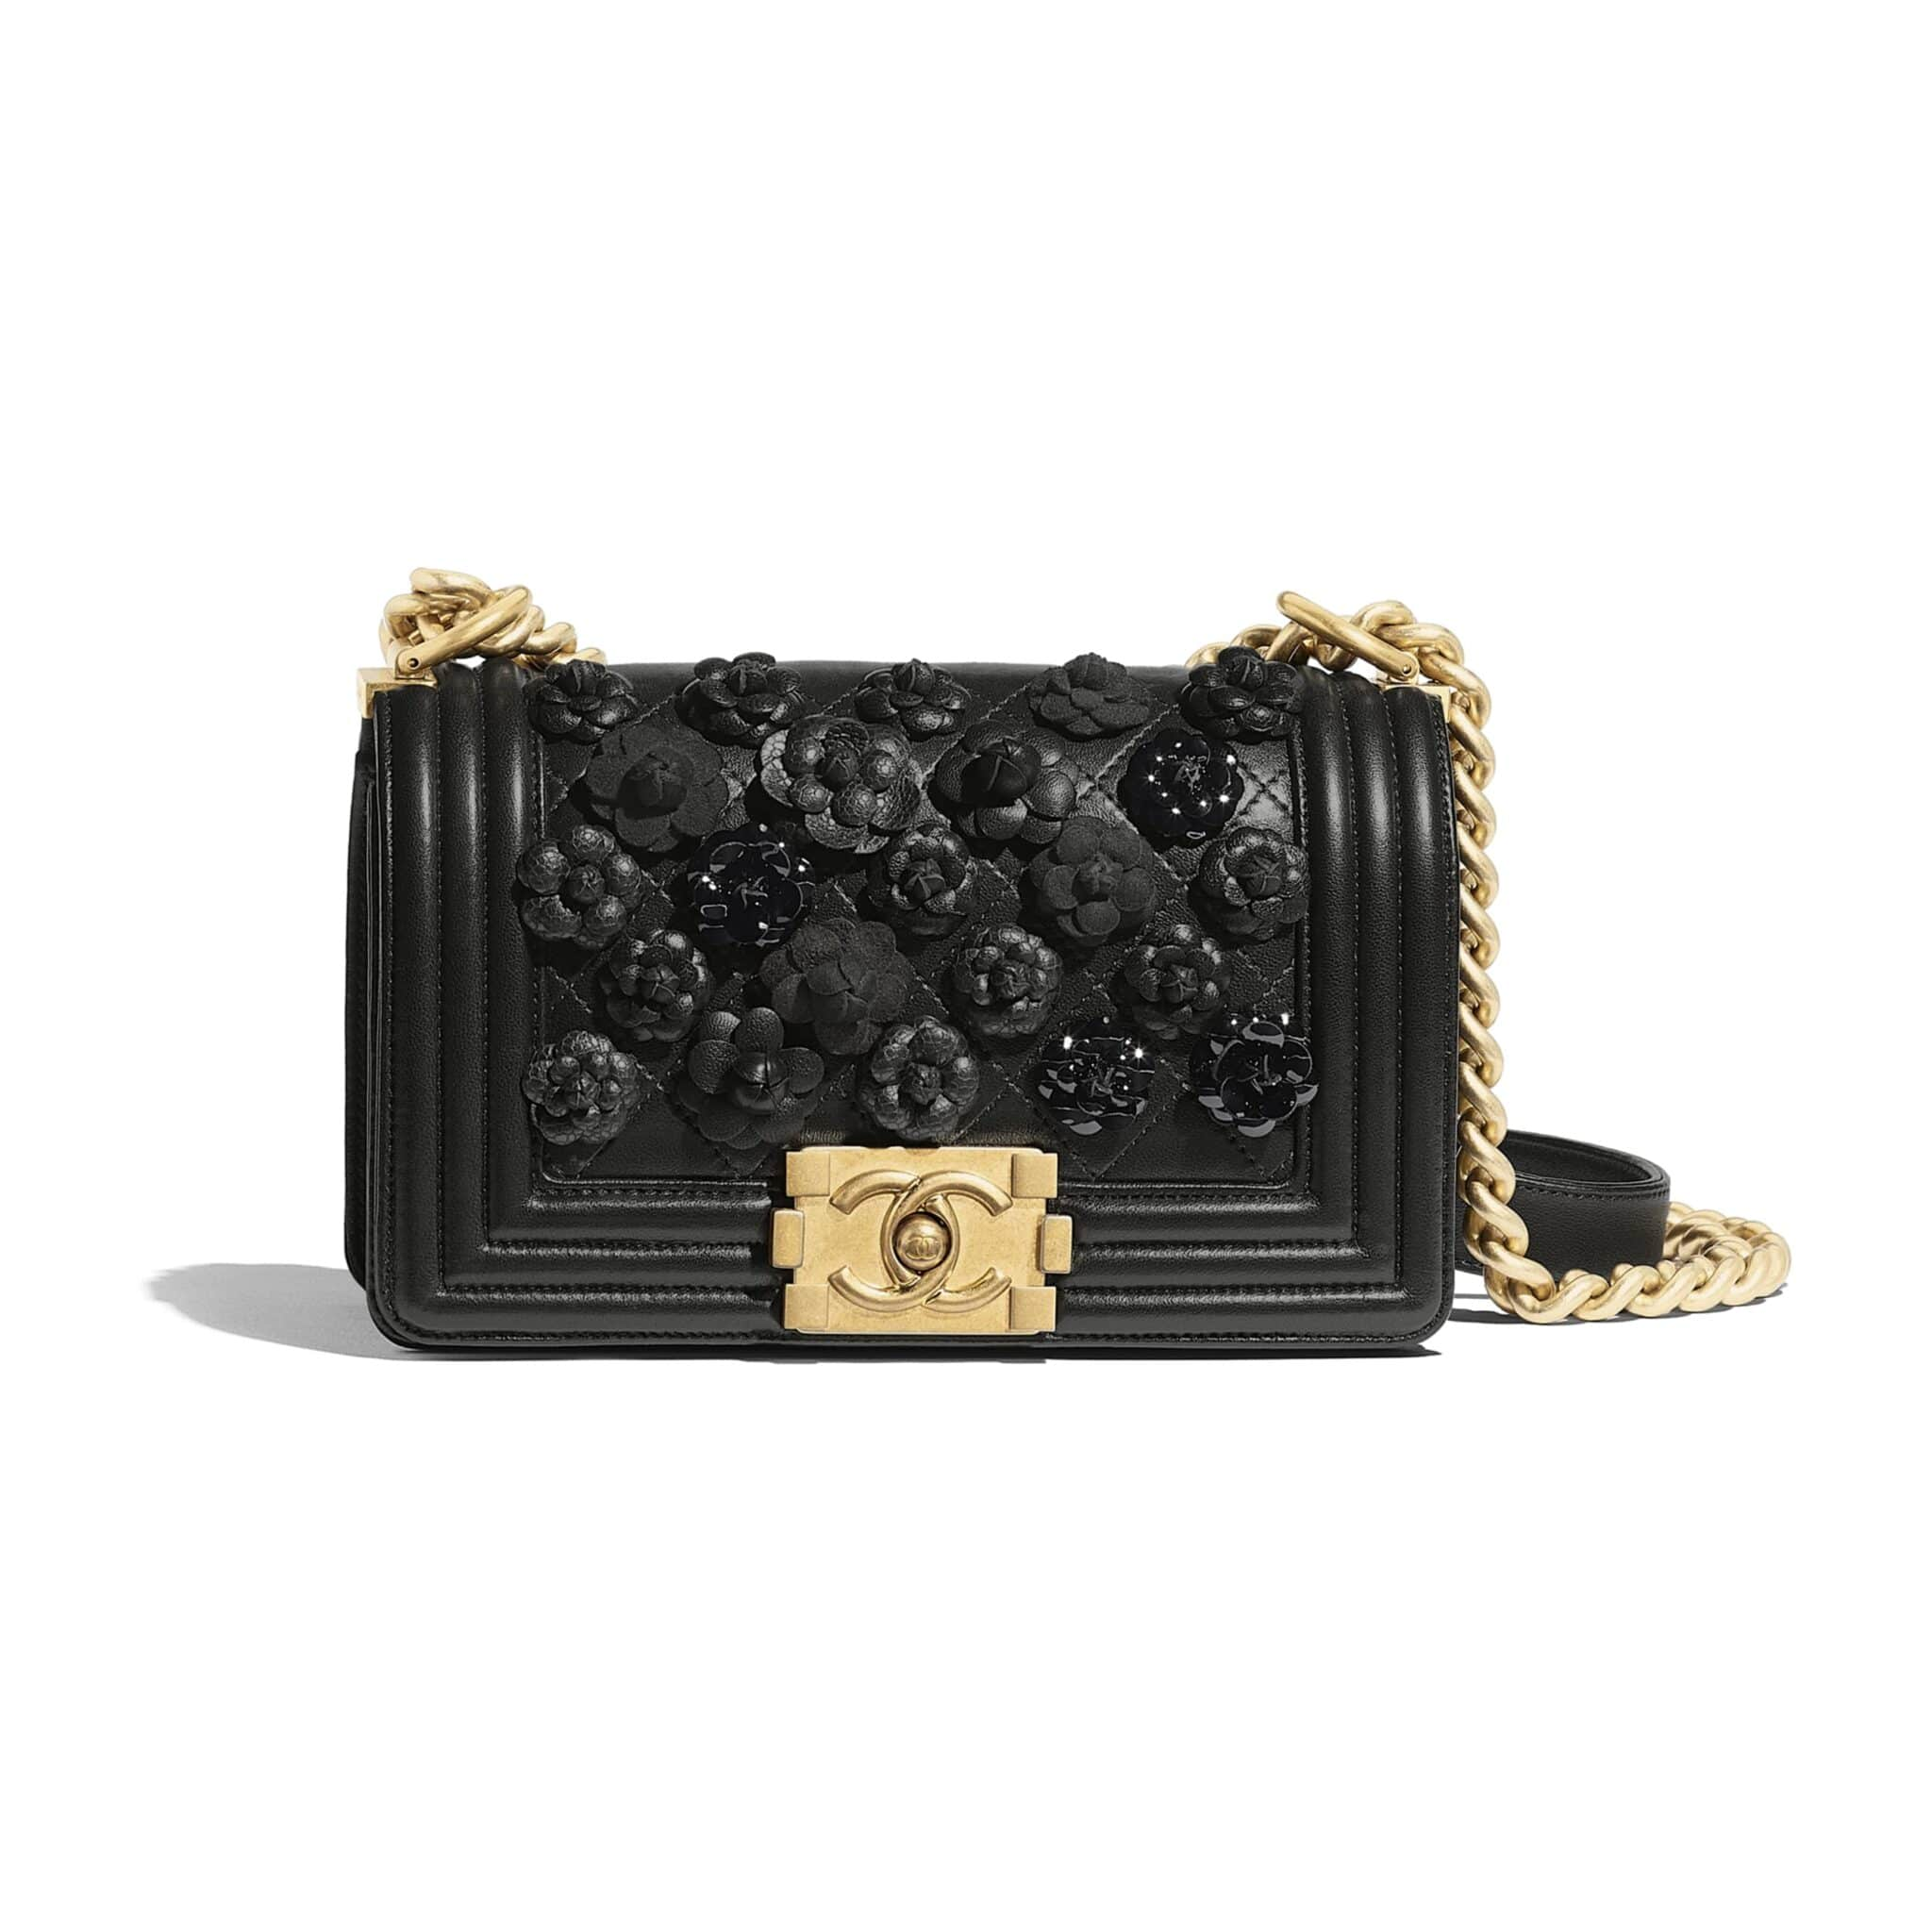 a91427d65559 Chanel Black Camellia Embroidered Lambskin Boy Chanel Small Flap Bag